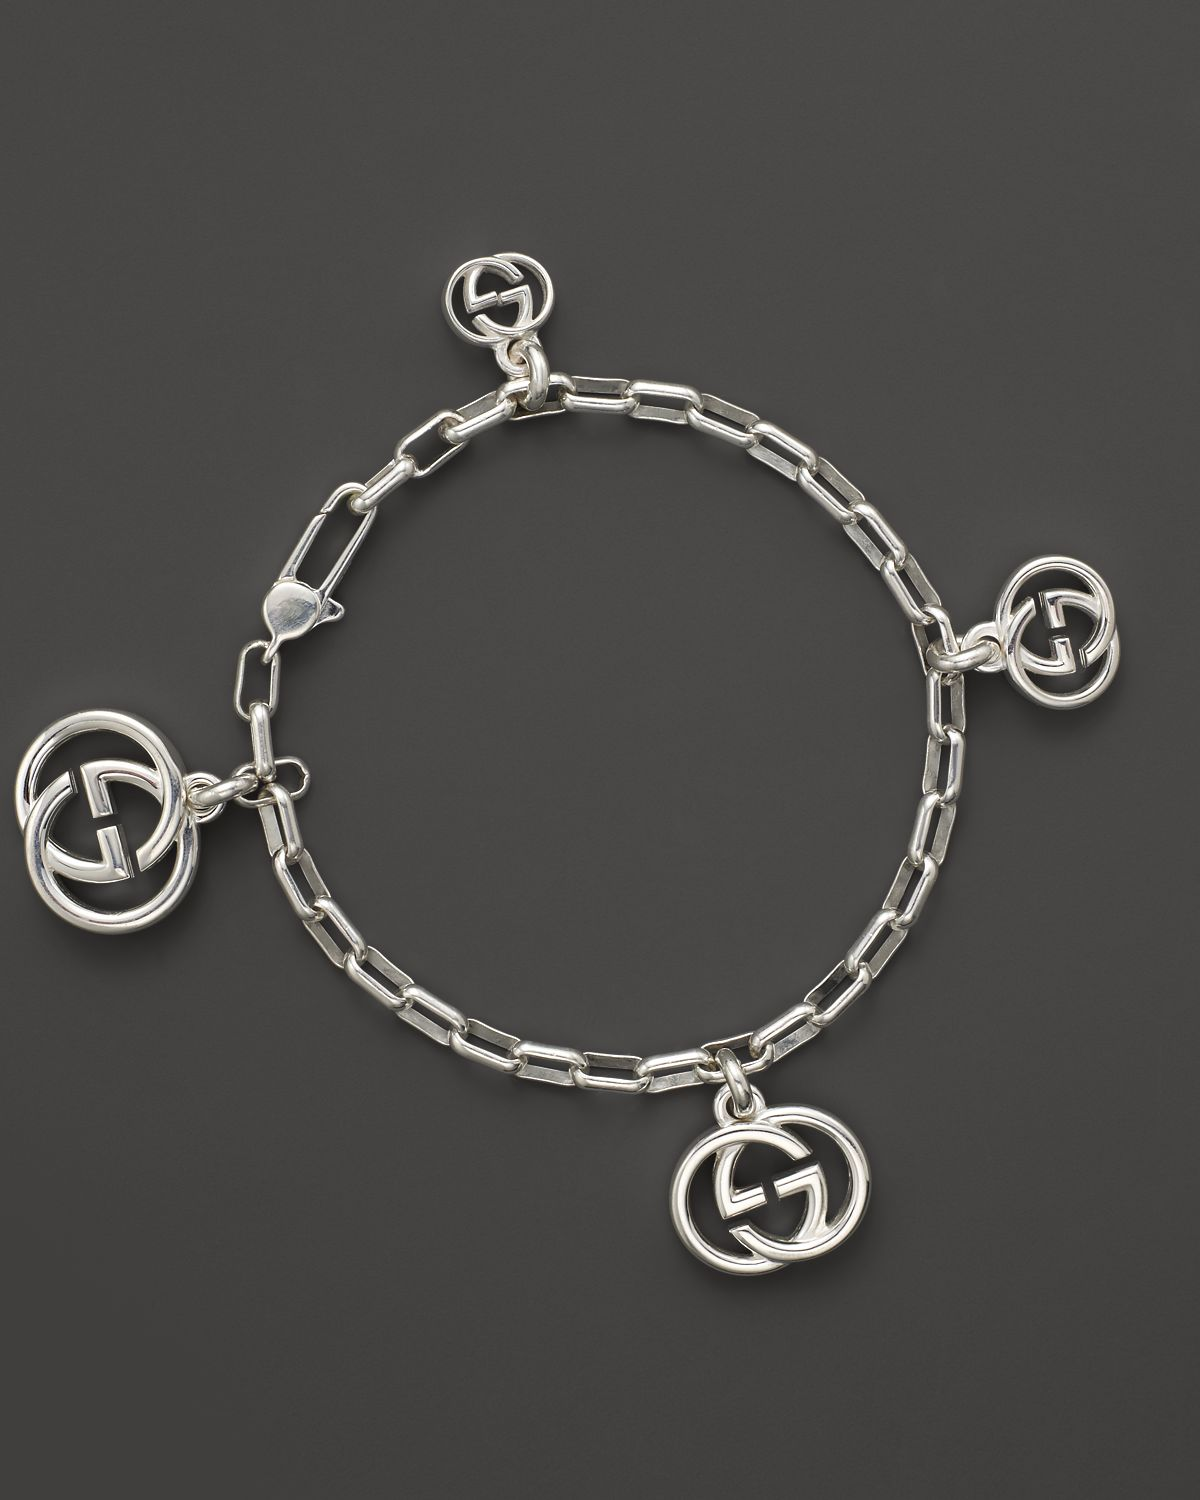 Gucci Interlocking Collection Double G Charm Bracelet in ...